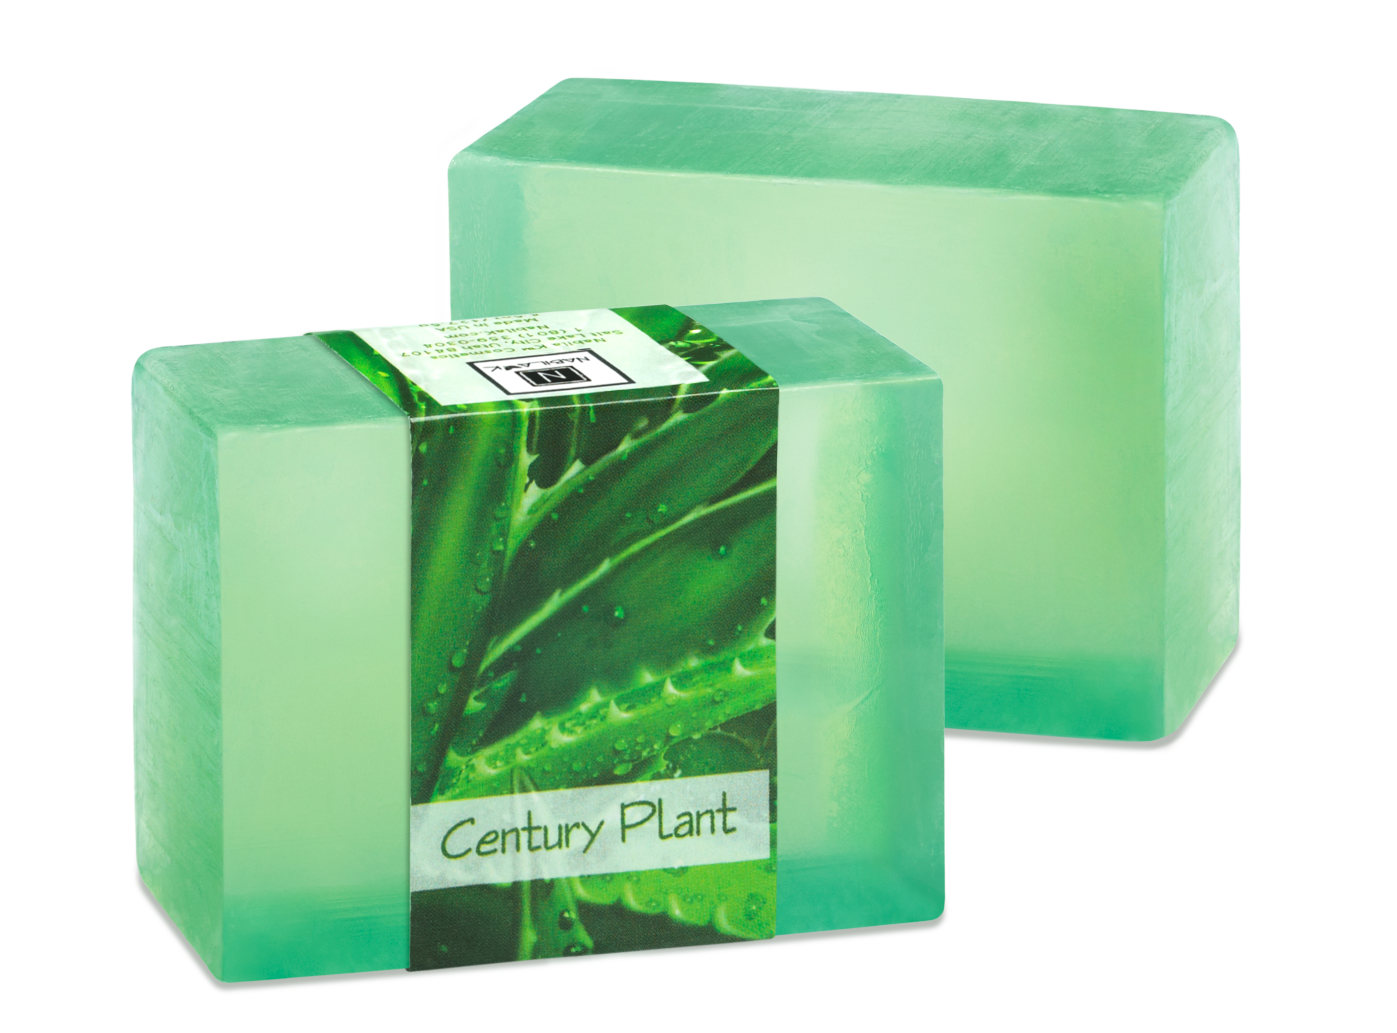 Aloe Vera glycerin soap is great for those with sensitive skin. NabilaK all natural soap does not dry skin.